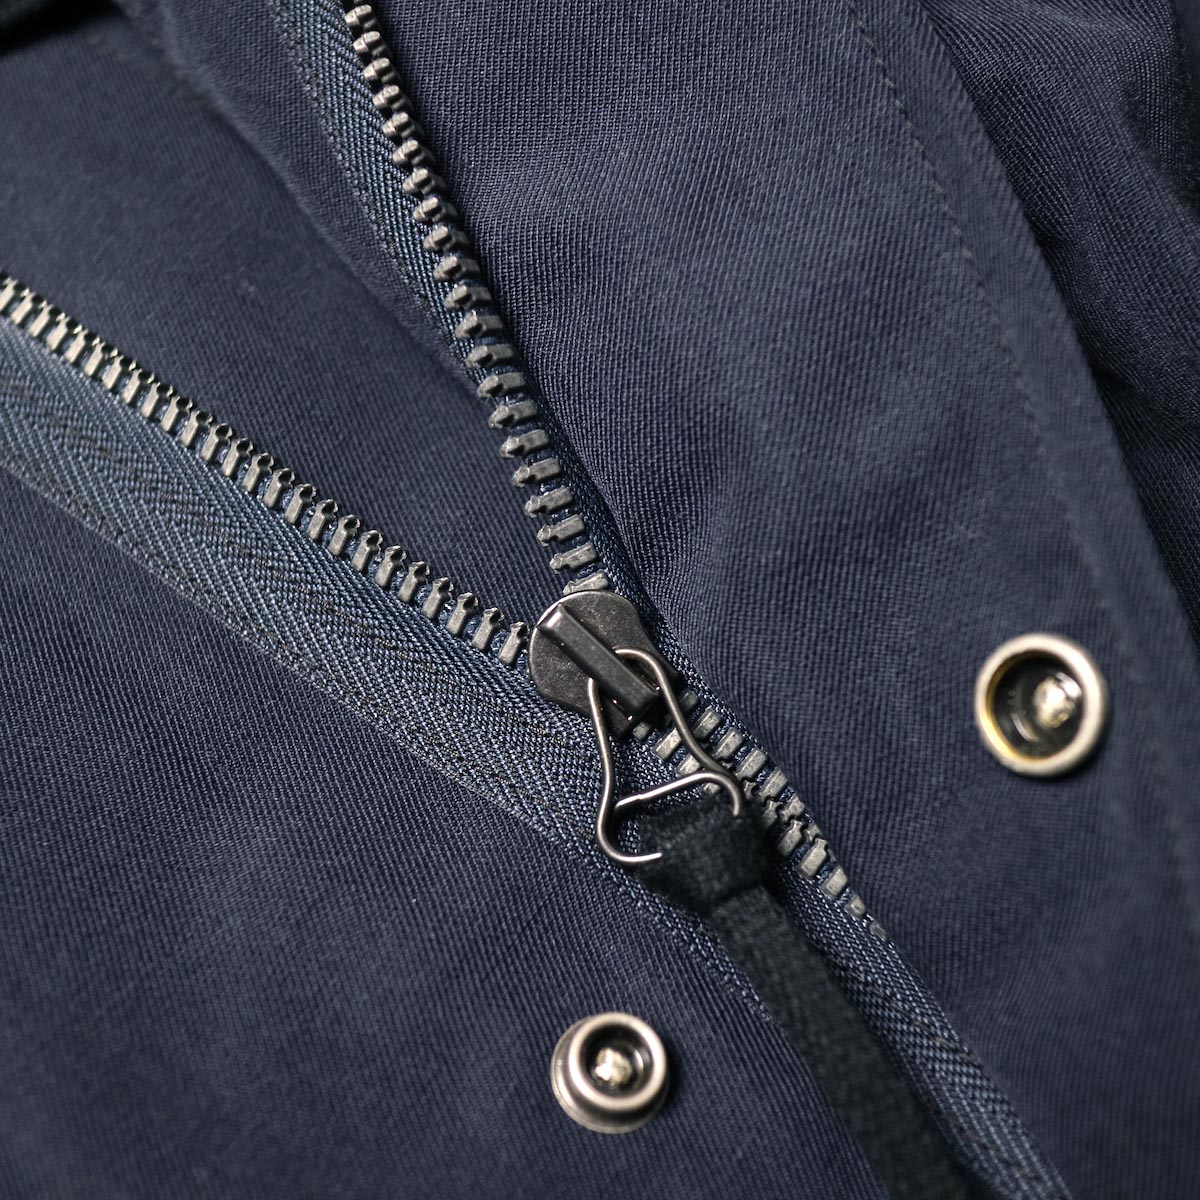 visvim / SIX-FIVE FISHTAIL PARKA (W/L) (Navy)ファスナー